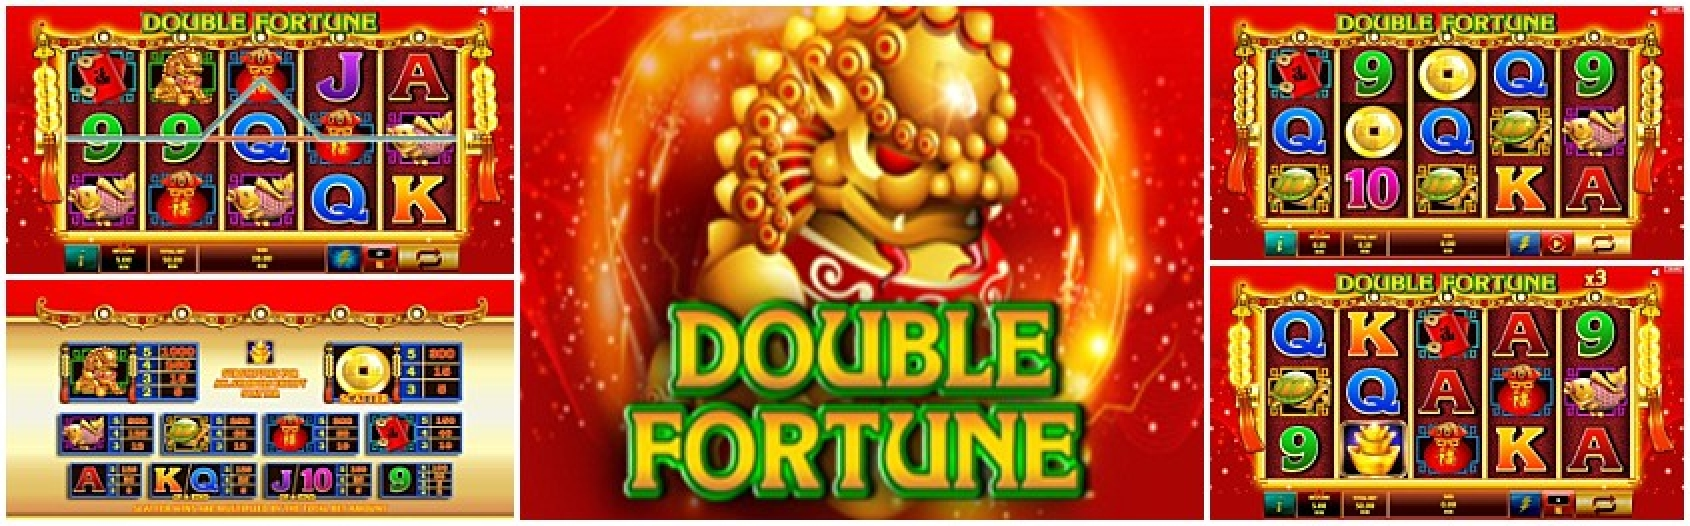 The Double Fortune (Oryx) Online Slot Demo Game by Givme Games